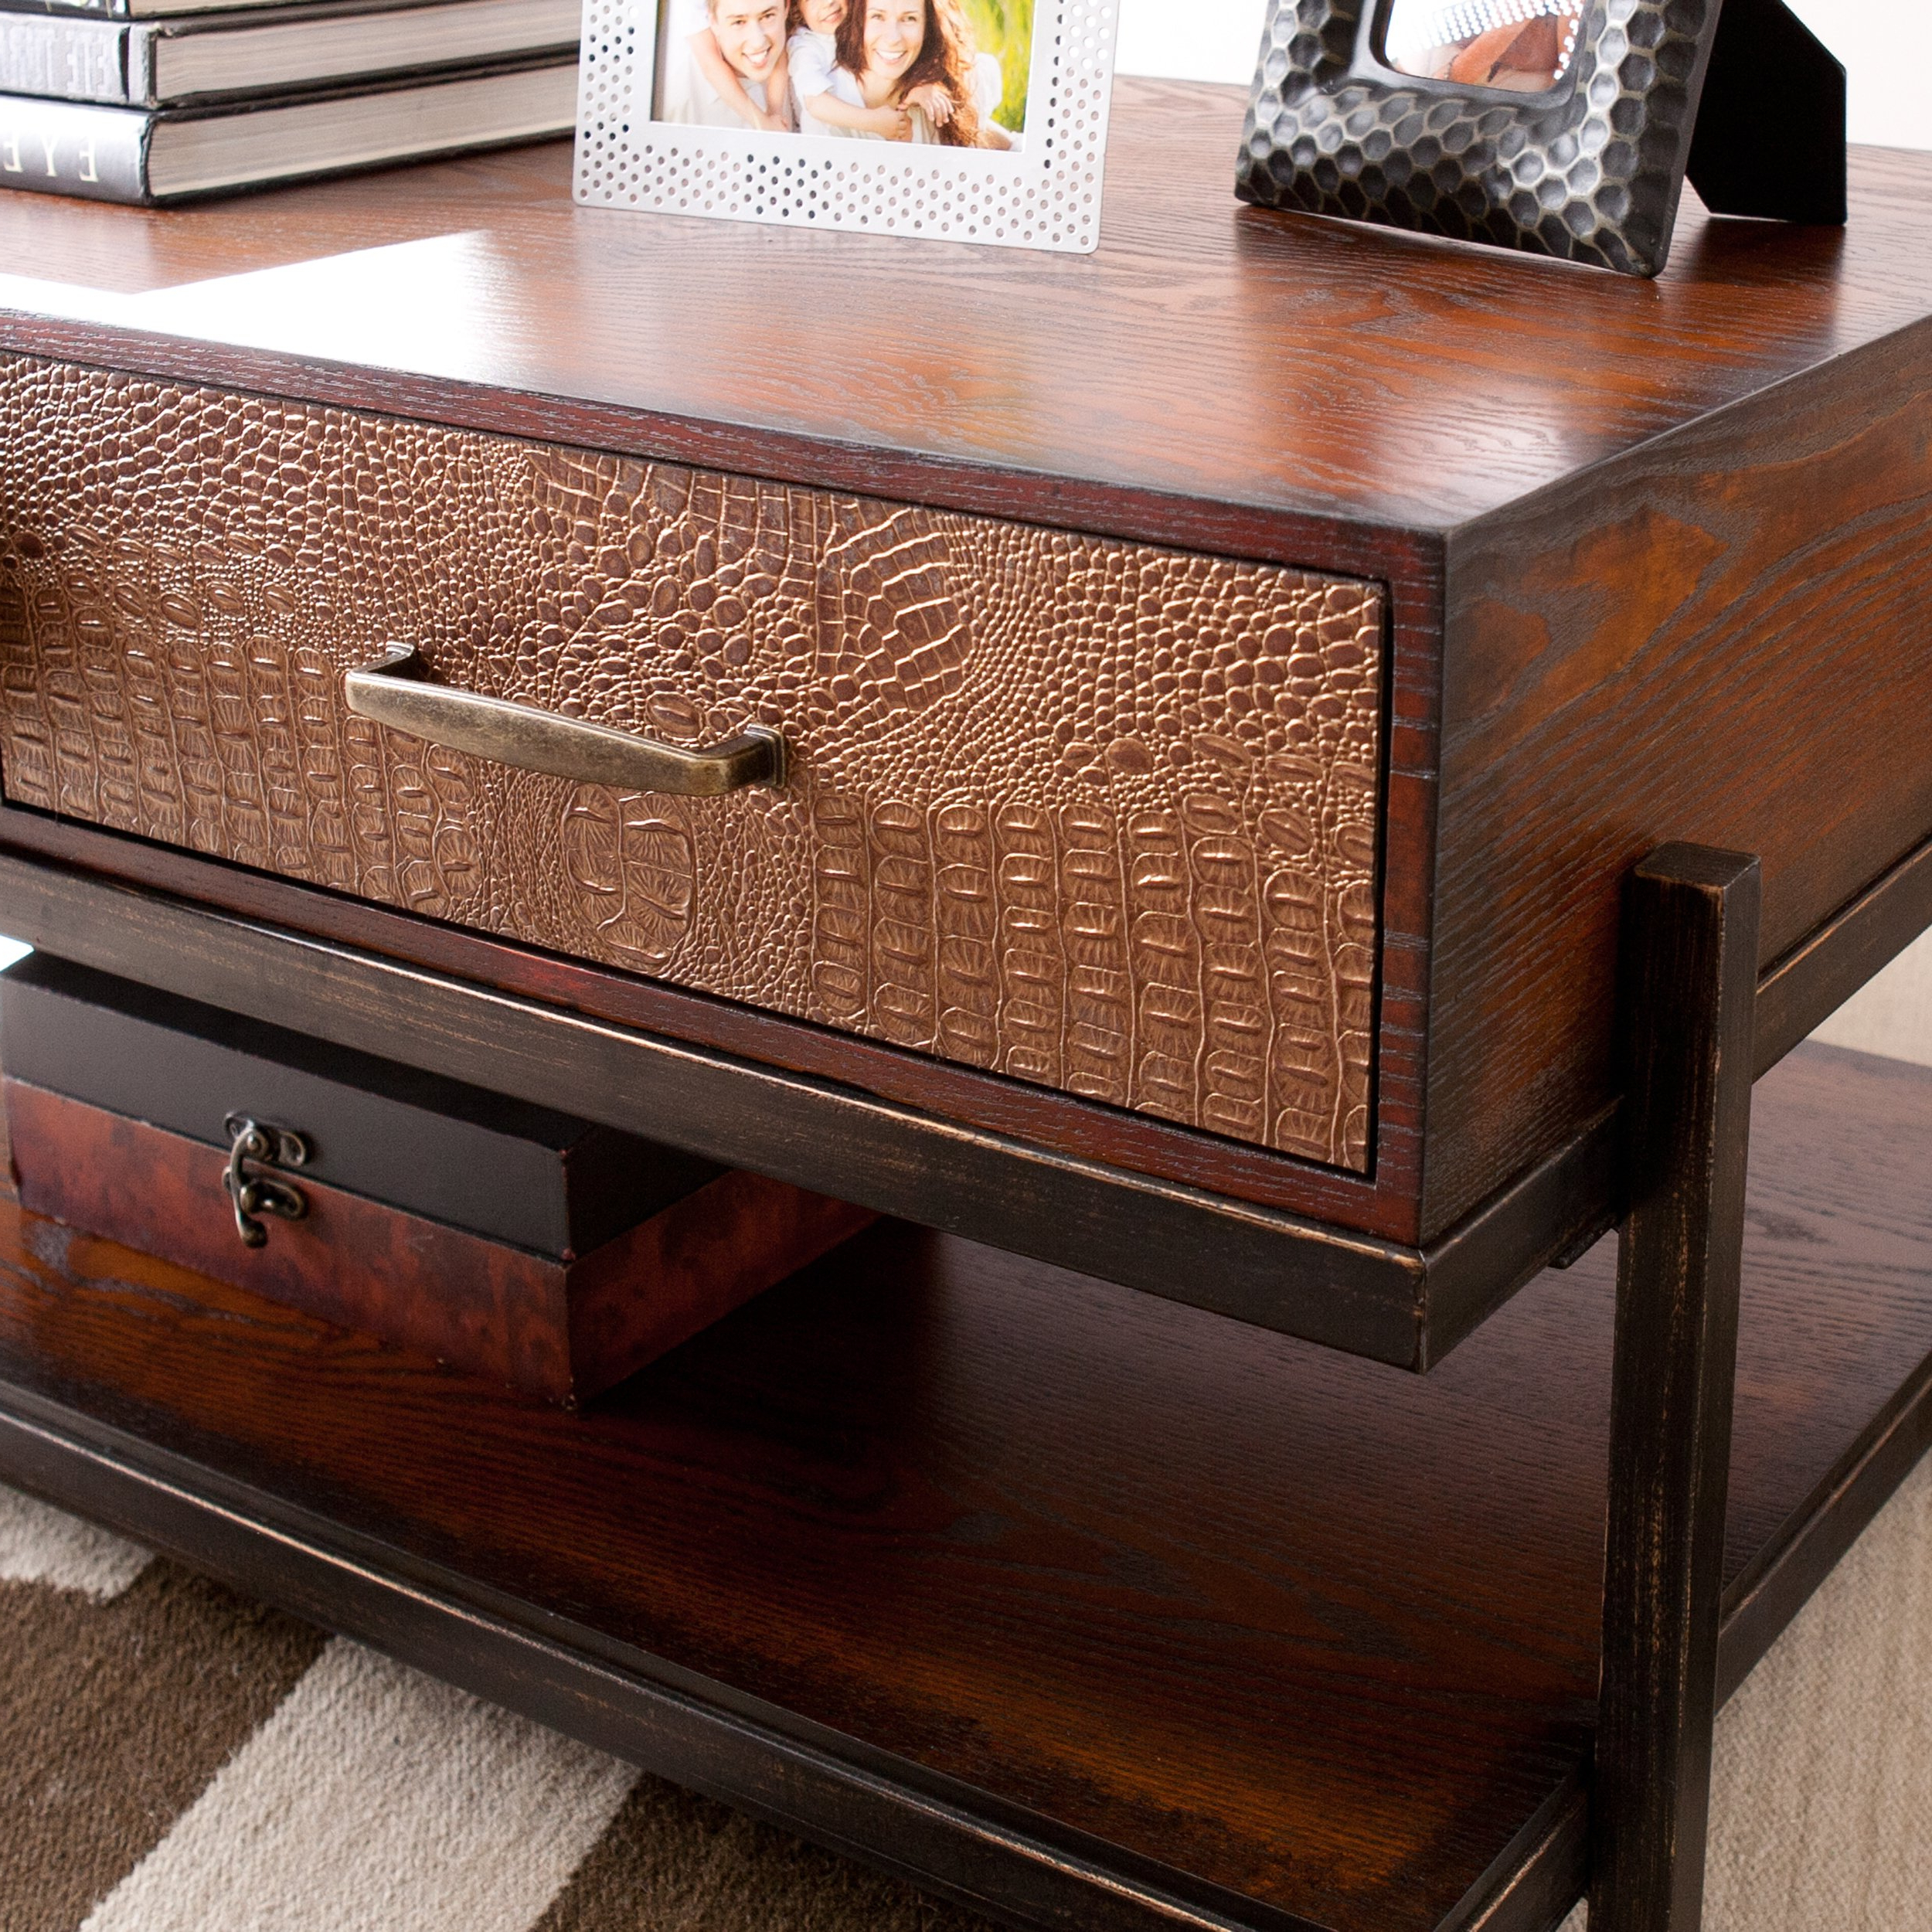 Shop Harper Blvd Palmer Cocktail/ Coffee Table – Free Shipping Today With Regard To Popular Palmer Storage Cocktail Tables (View 14 of 20)